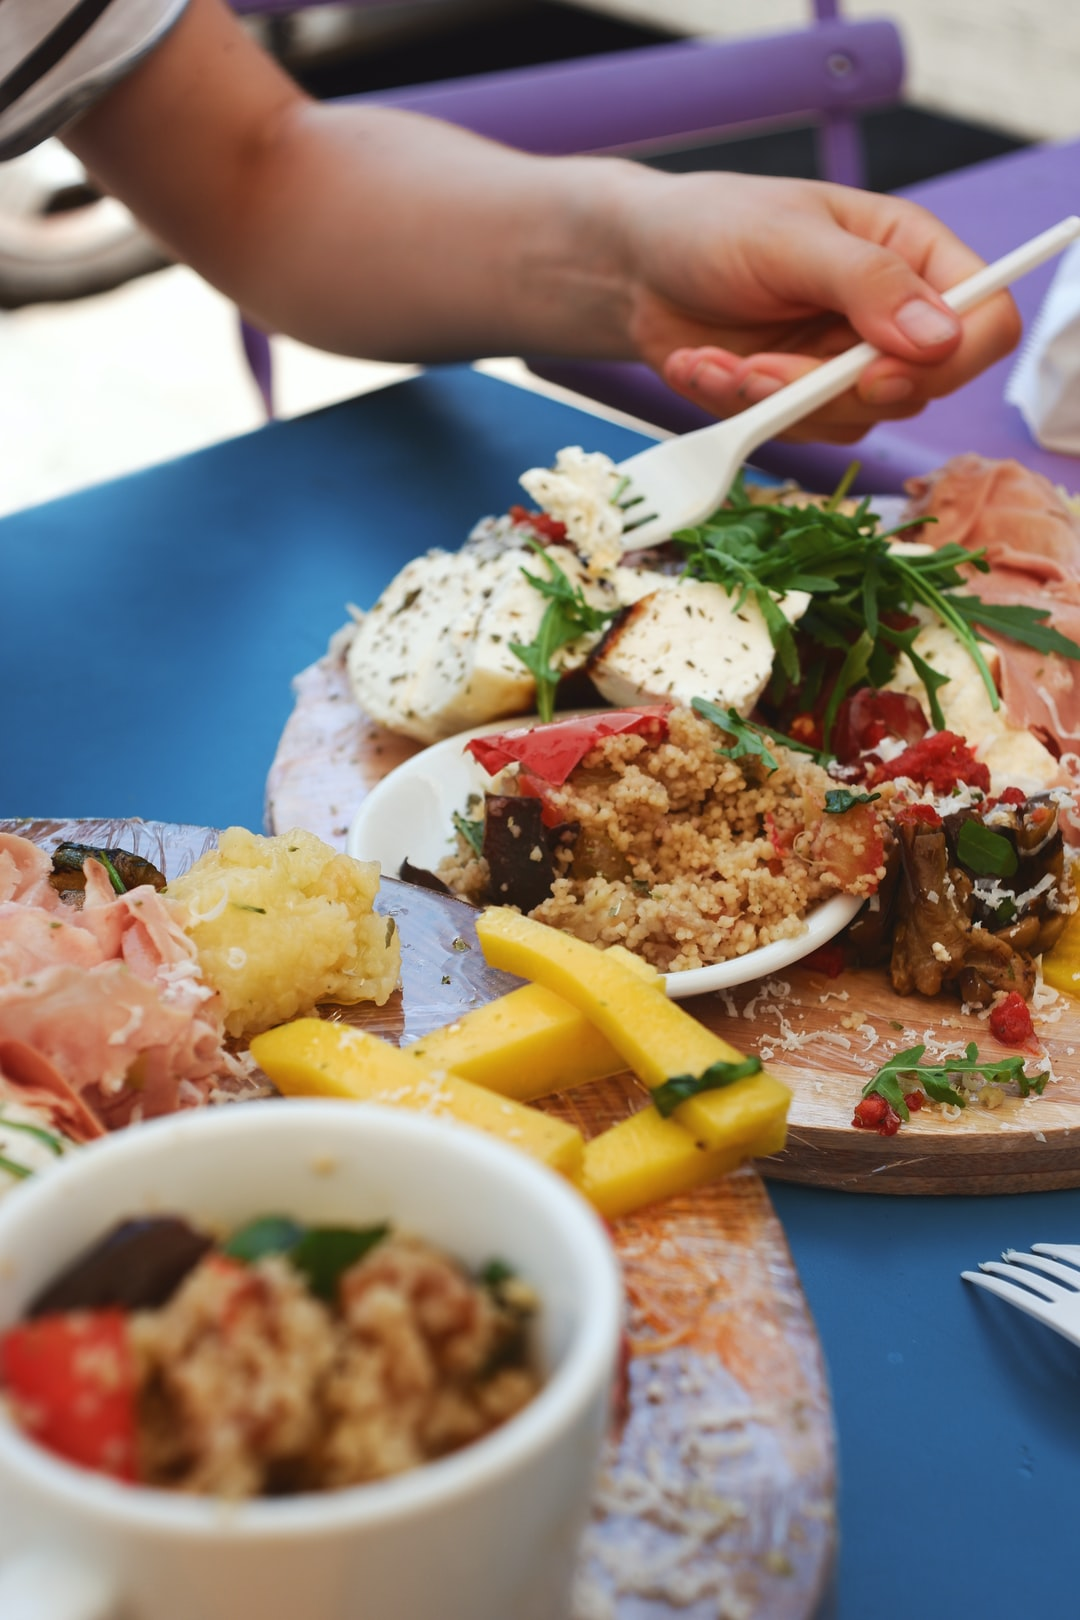 Italian food cheese and ham platter in Sicily with couscous, dried tomato and aubergine and arugula rocket salad